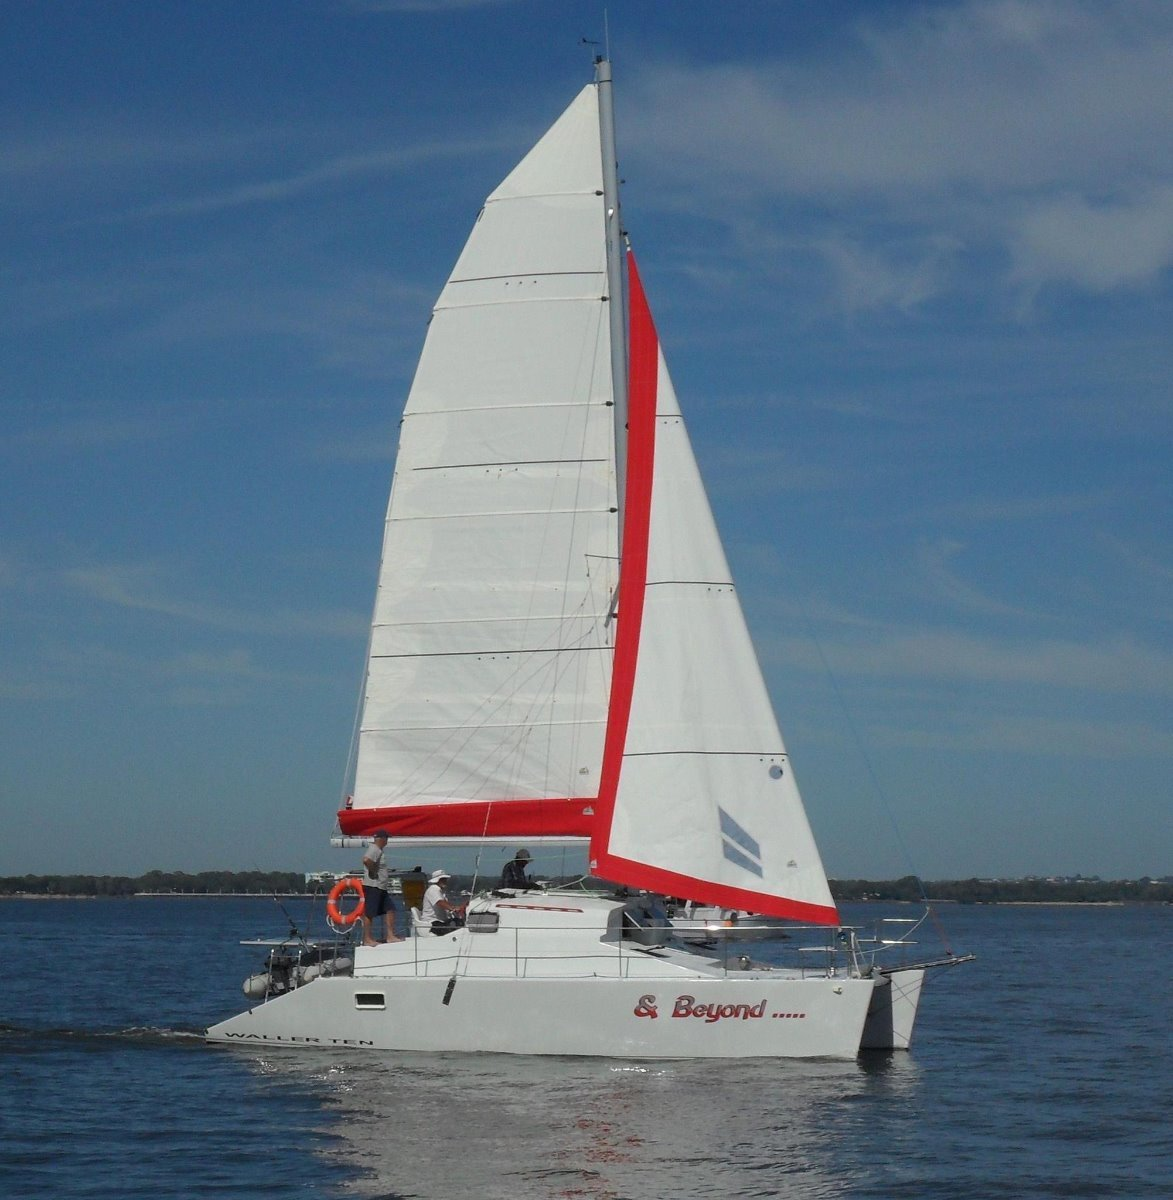 Waller Catamaran Ten Reduced for immidate sale